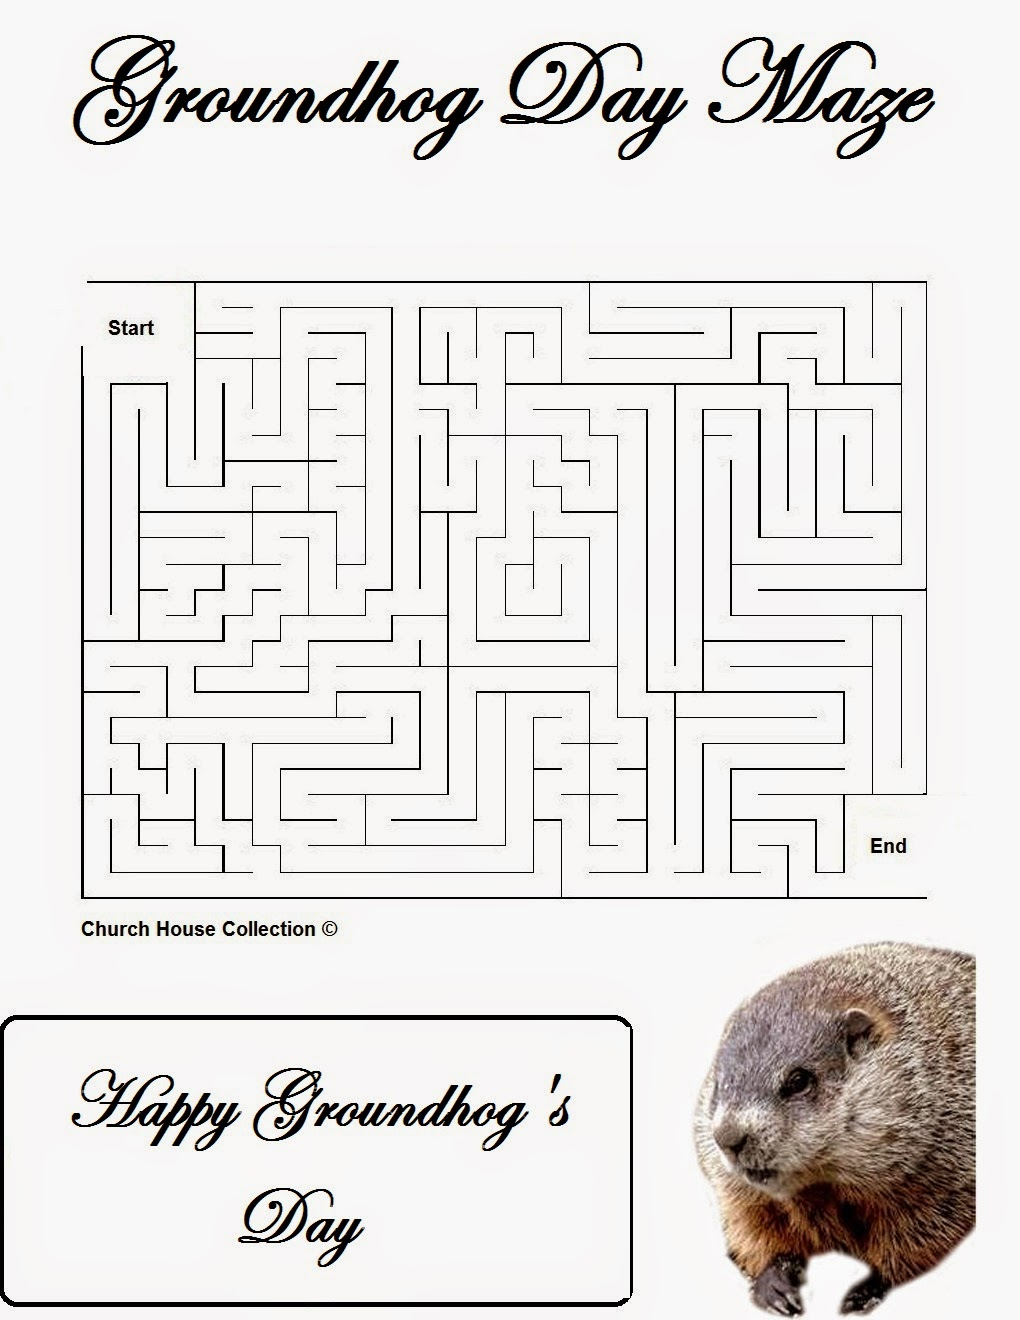 Groundhog Day activities for Preschool Goundhog day mazes – Groundhog Day Math Worksheets